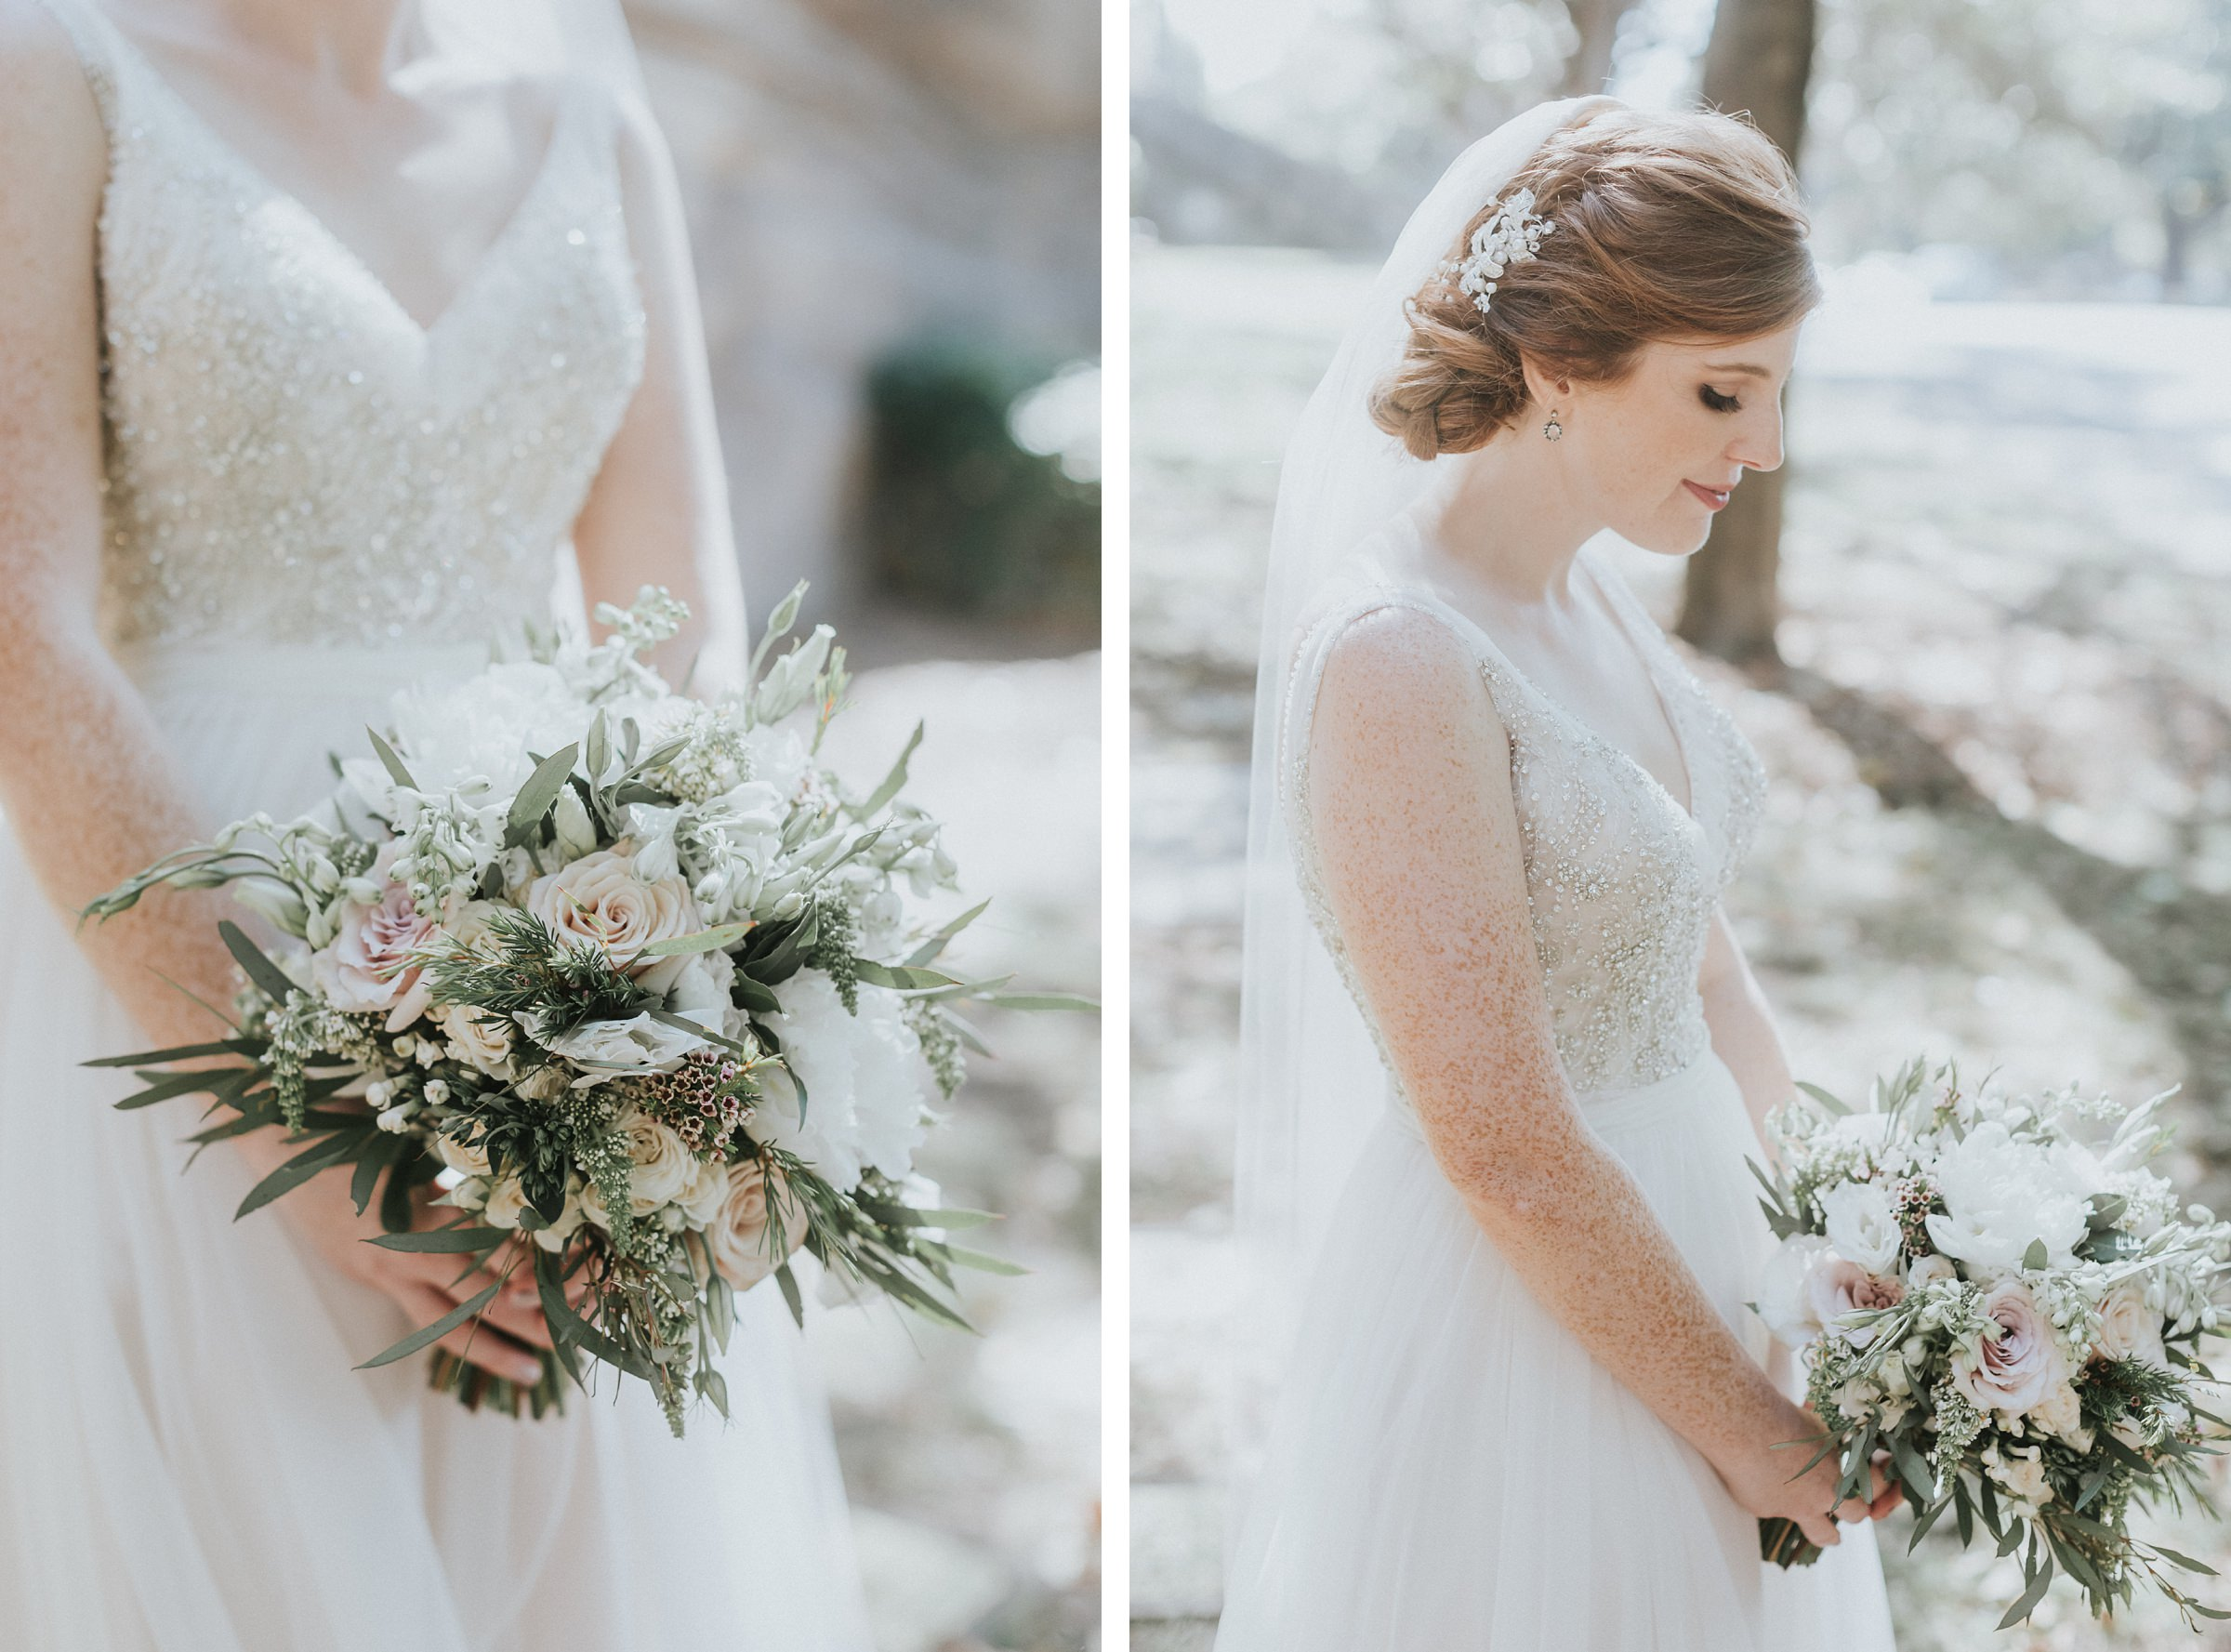 sydney beautiful bride portraits by jonathan david